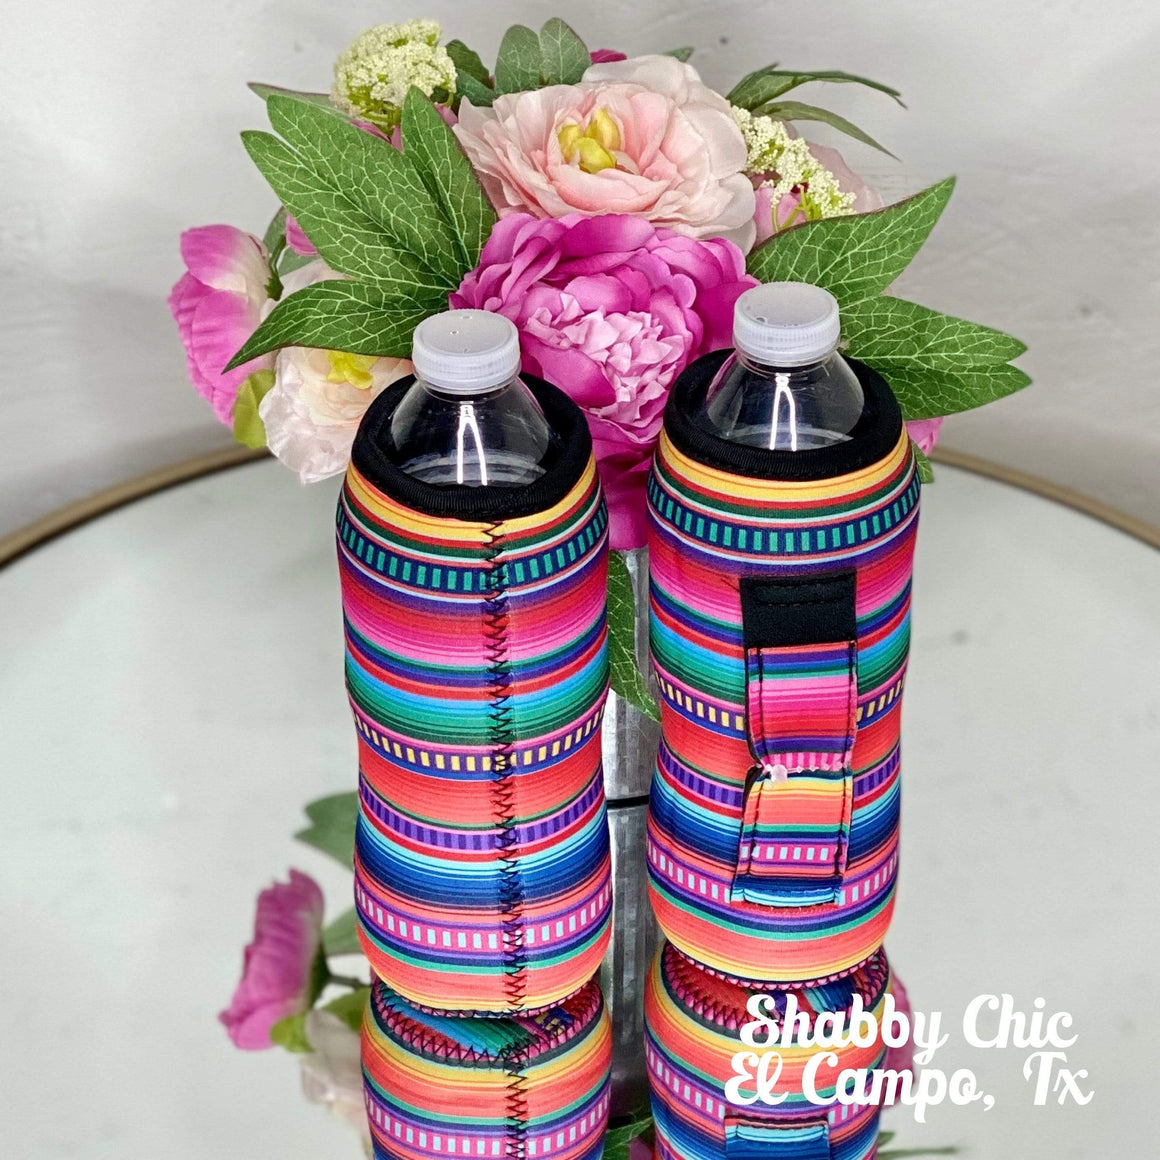 Serape Water Bottle Koozie Shabby Chic Boutique and Tanning Salon